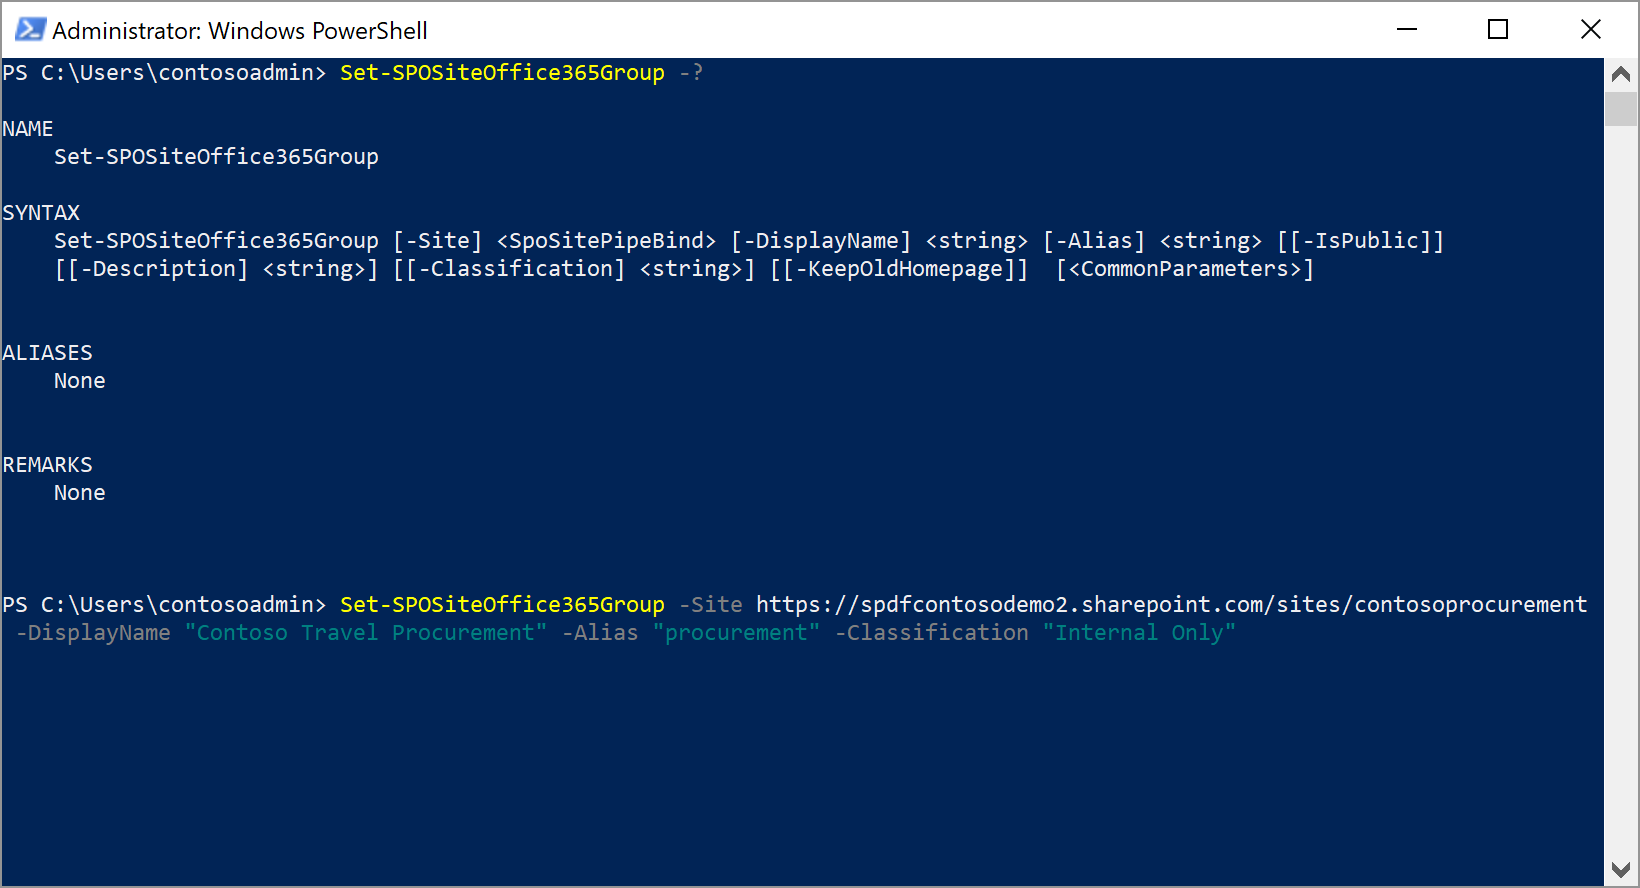 Rolling Out Tenant Admin Tools To Connect Existing Sharepoint Team